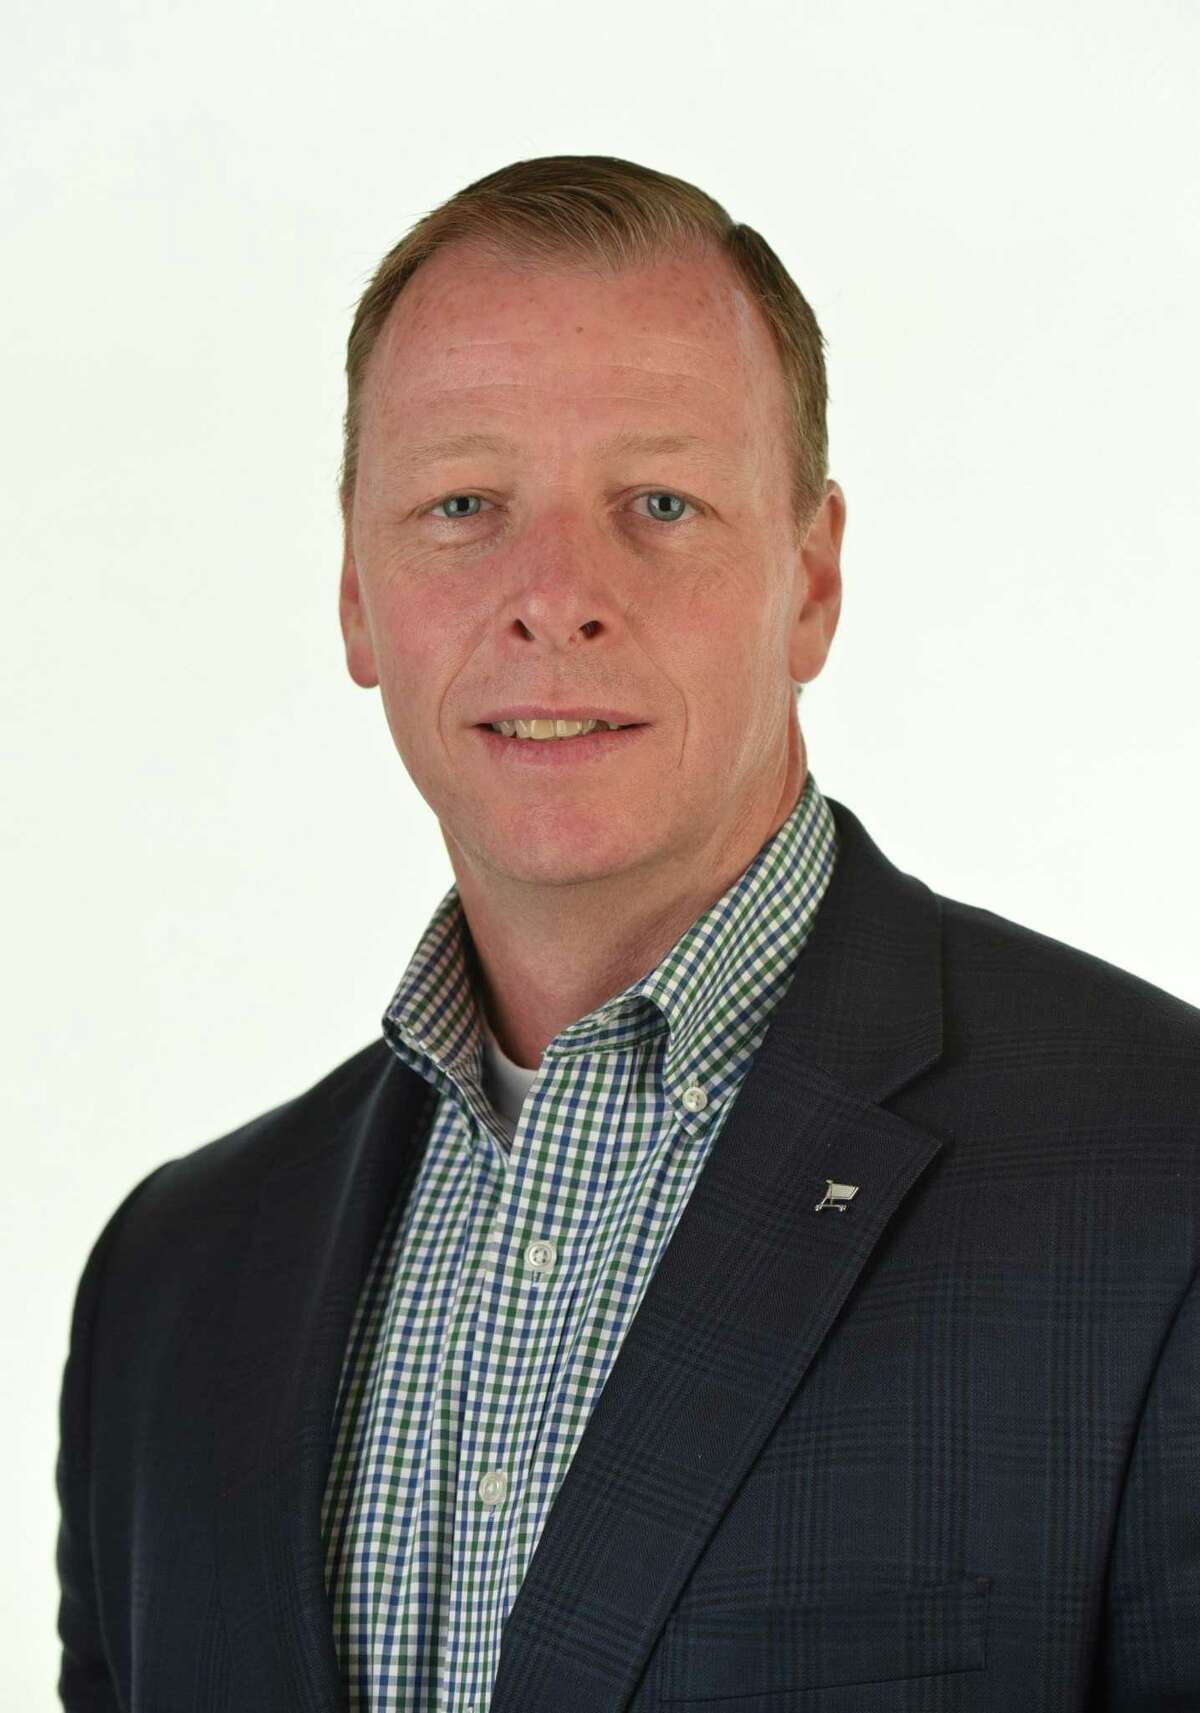 Doug Baker, vice president FMI-Food Industry Association, believes COVID-19 has made an impact on the future of he food supply chain.